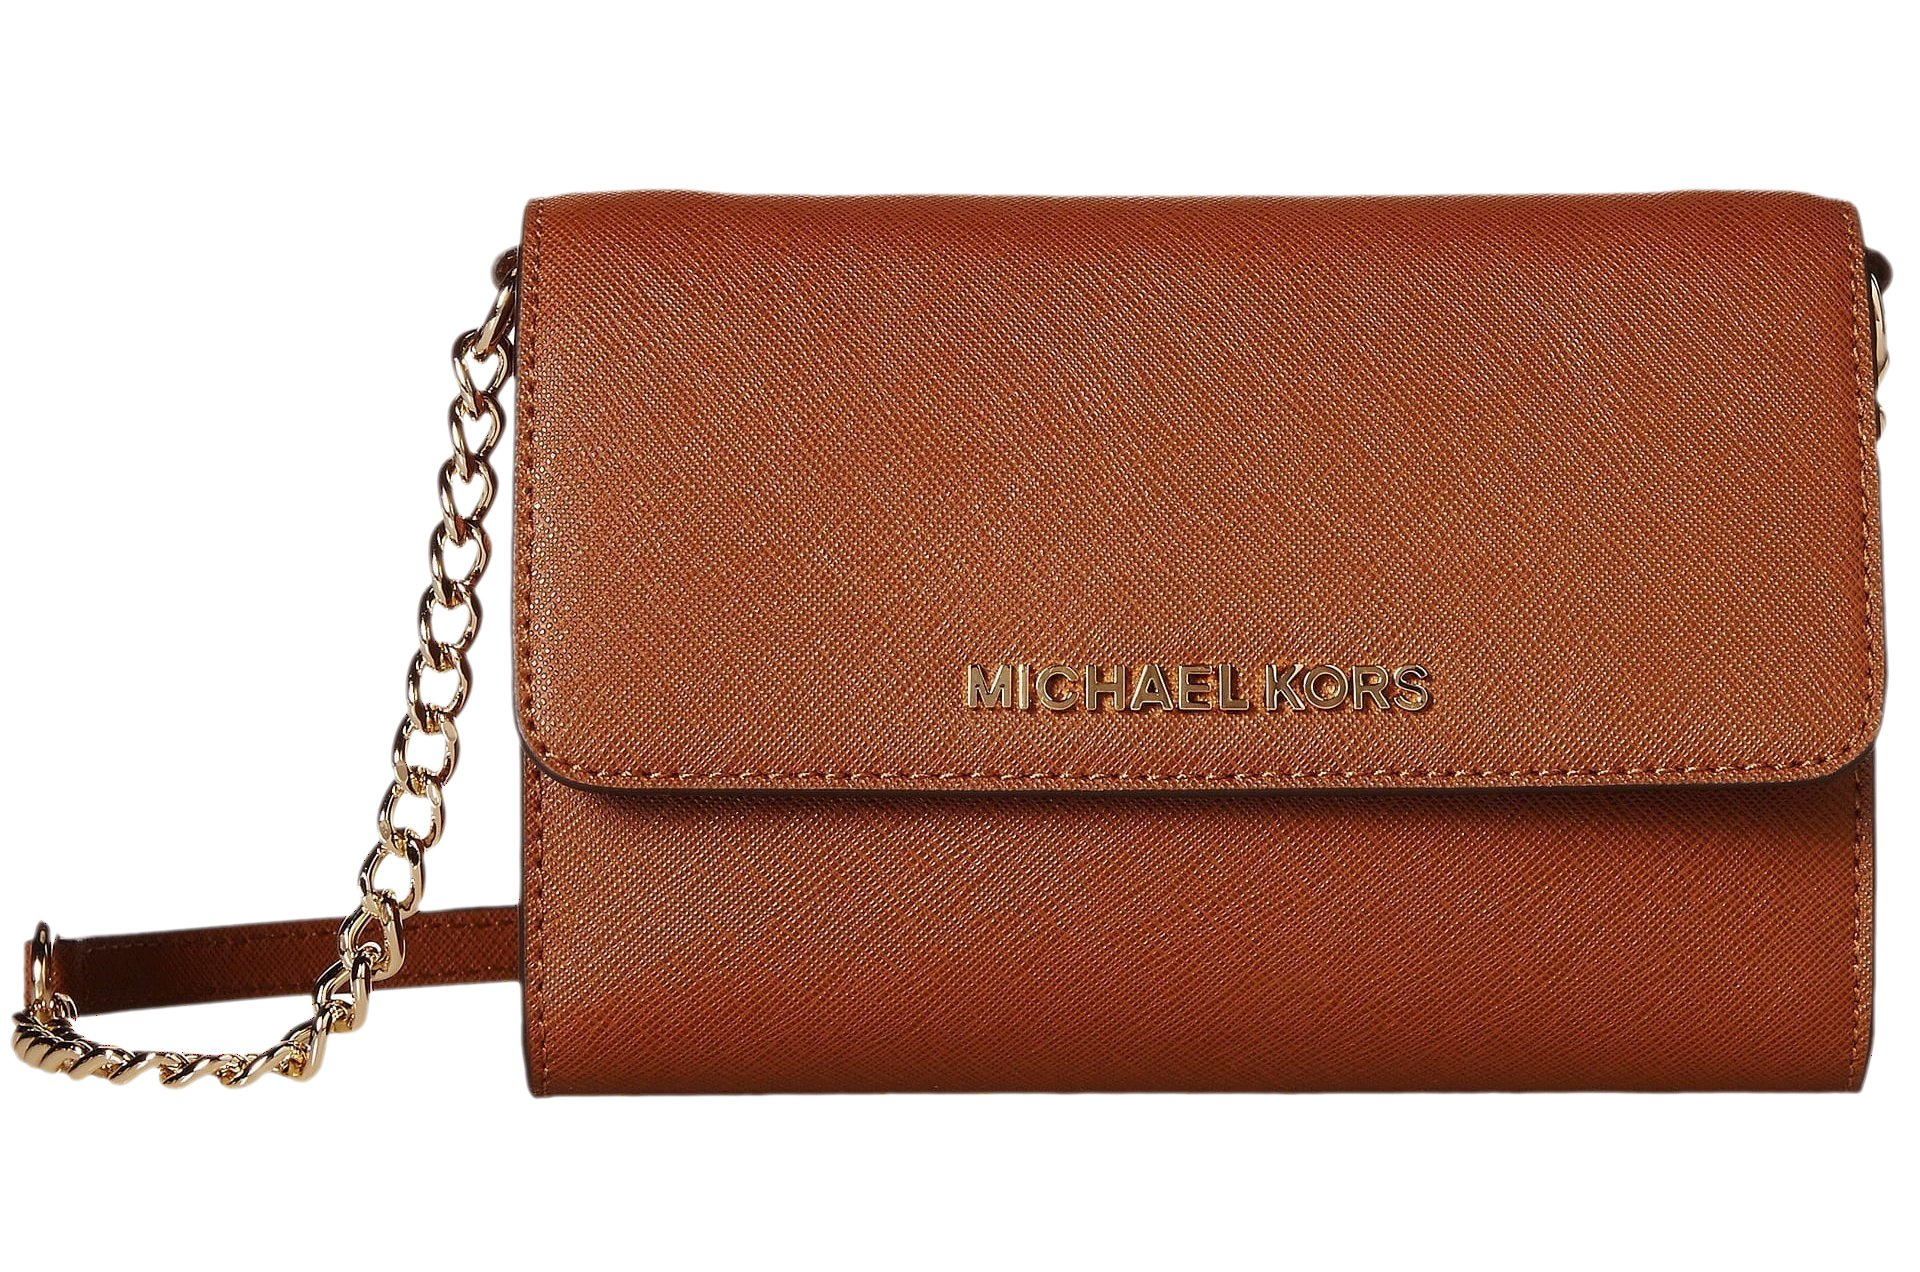 Michael Kors Womens Jet Set Travel LG Phone Crossbody Wallet Purse Luggage Brown by Michael Kors